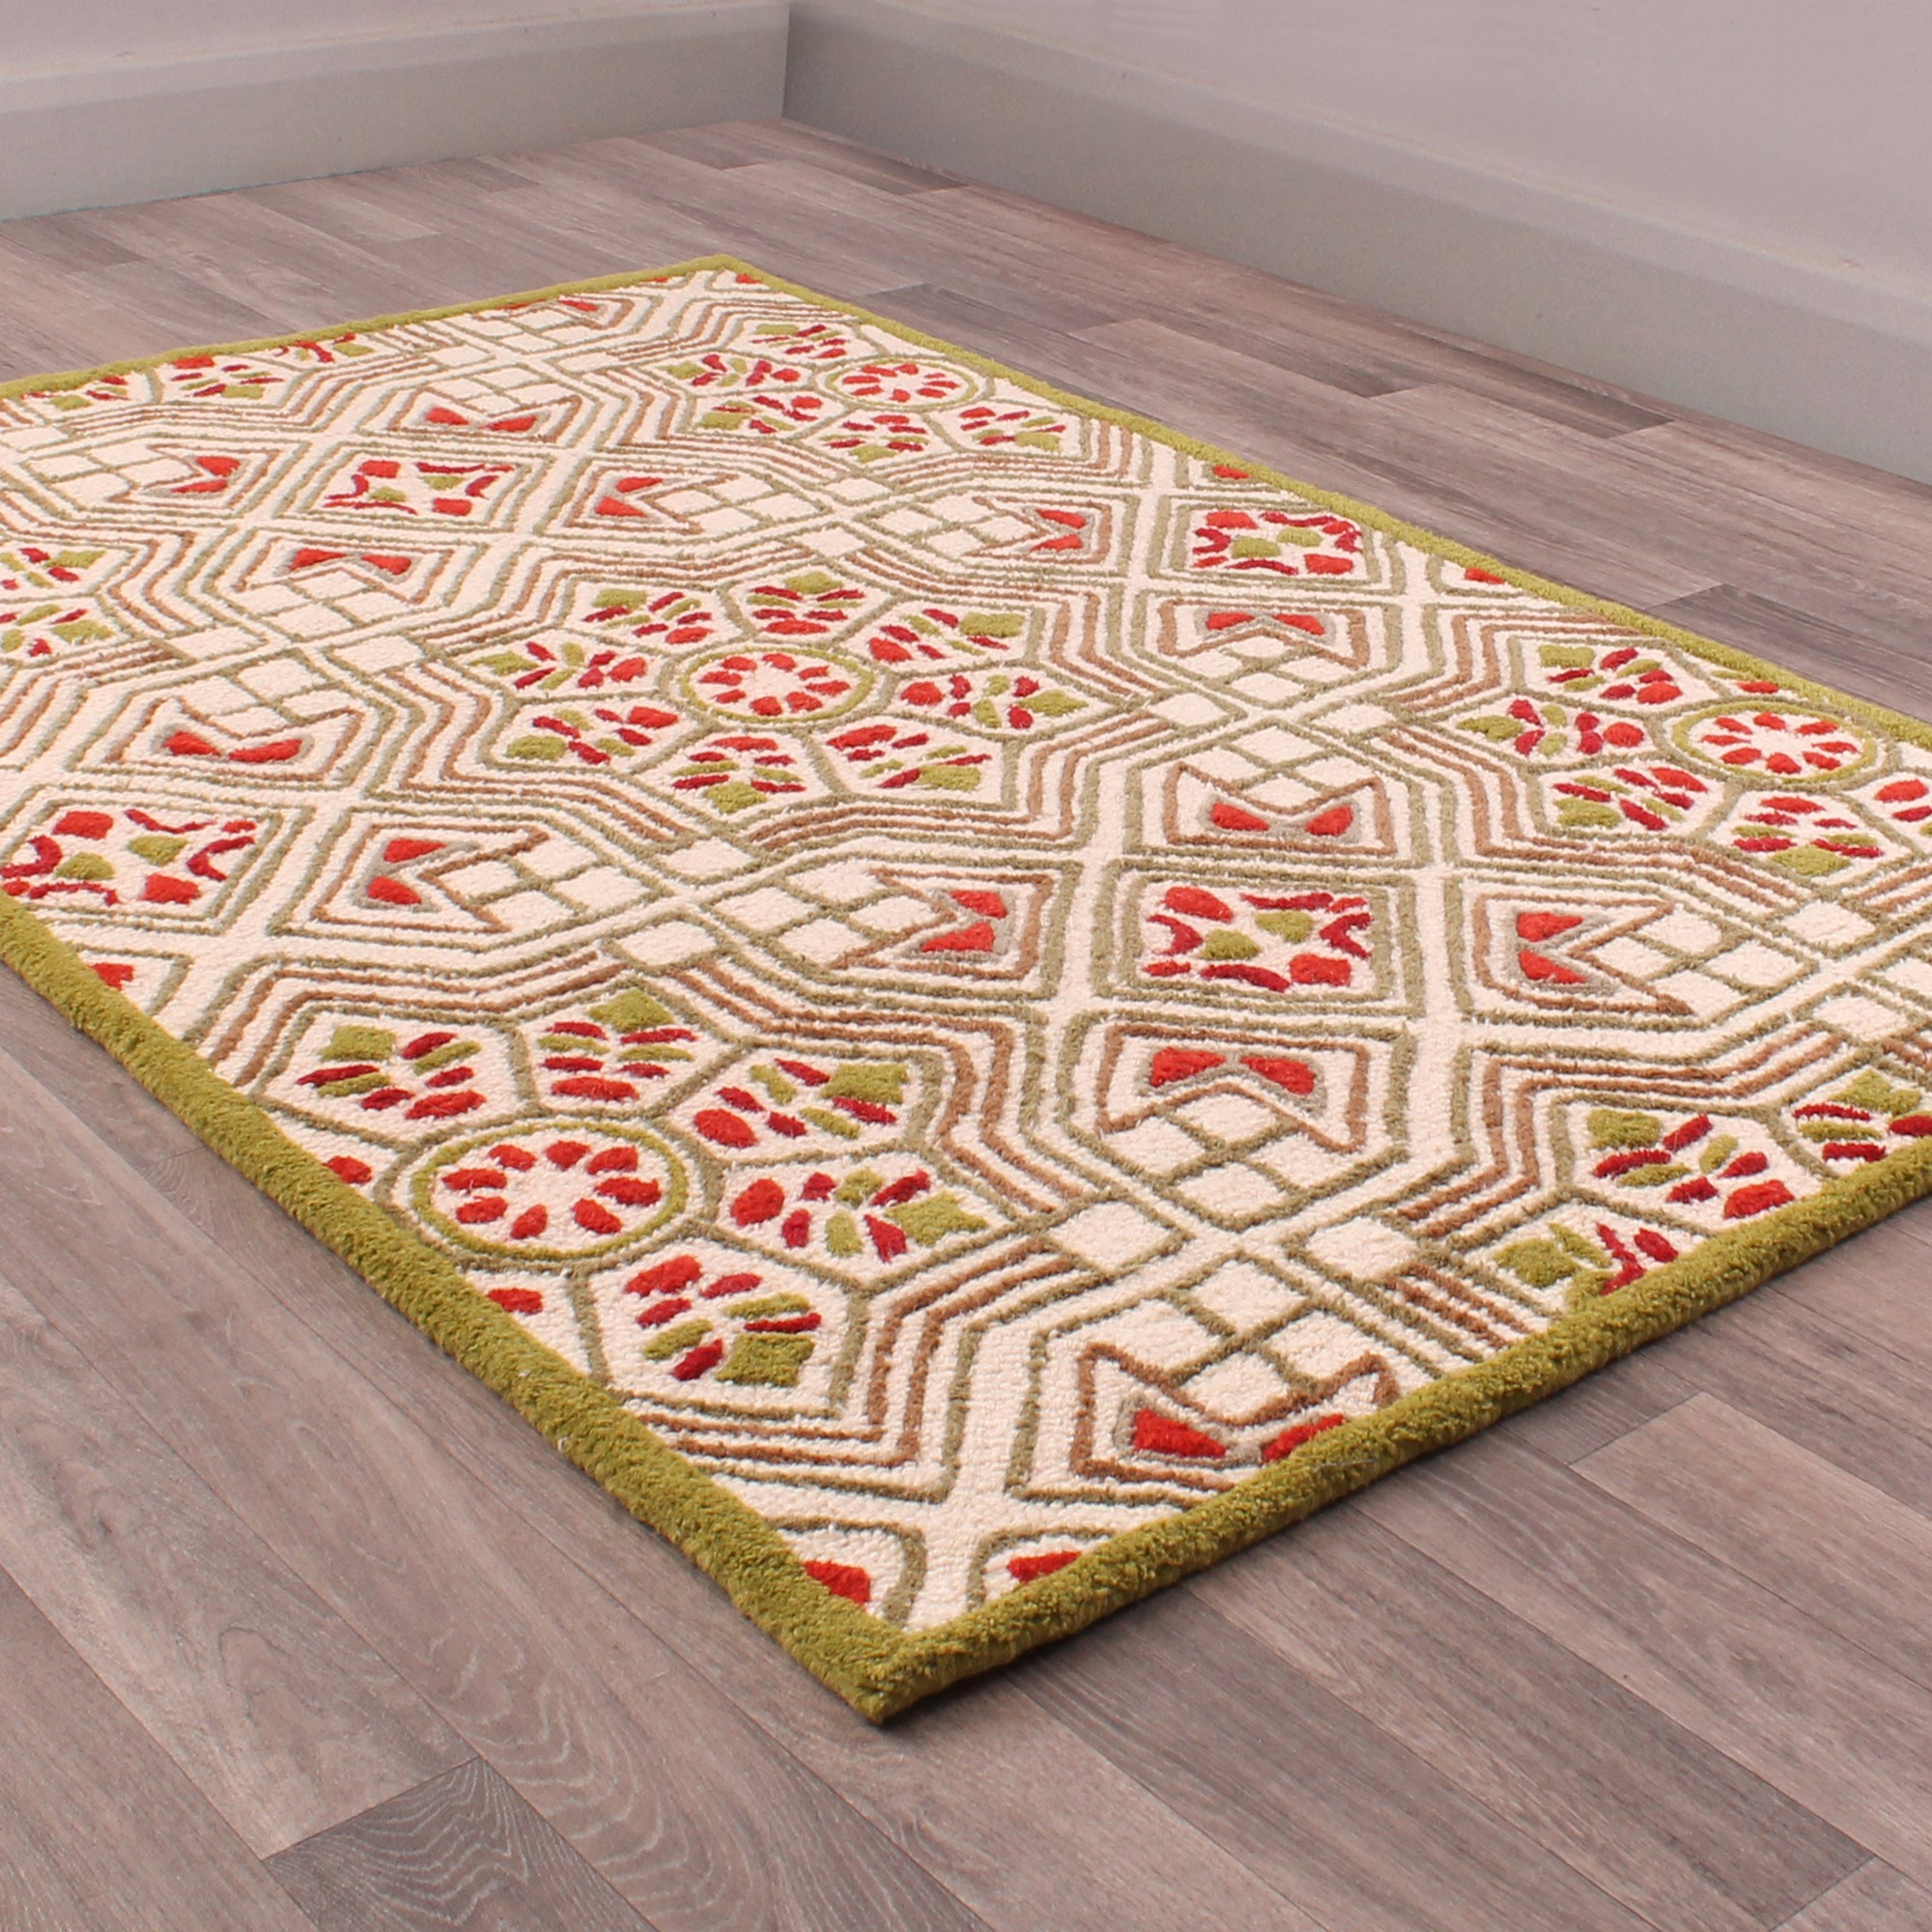 Fusion Timor Rugs in Green and Red